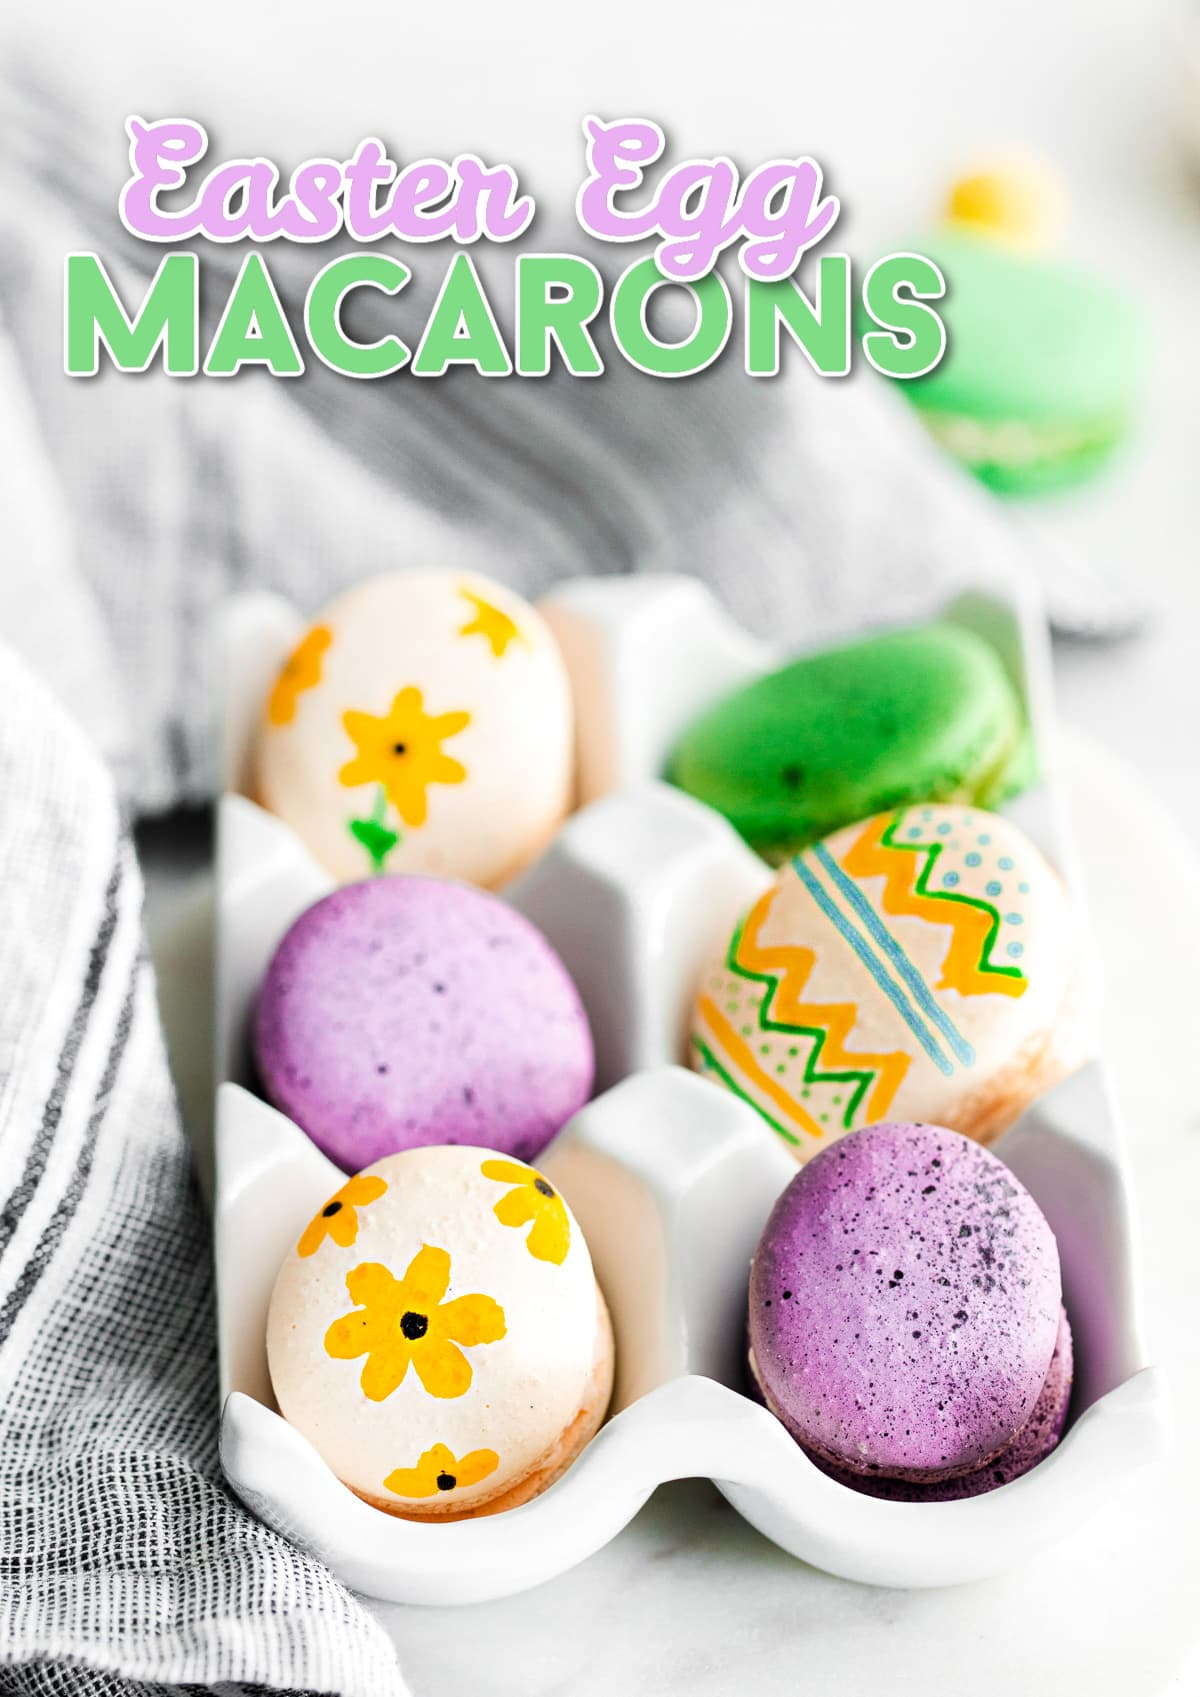 french macarons decorated as easter eggs sitting in white egg crate with title overlay at top of image.